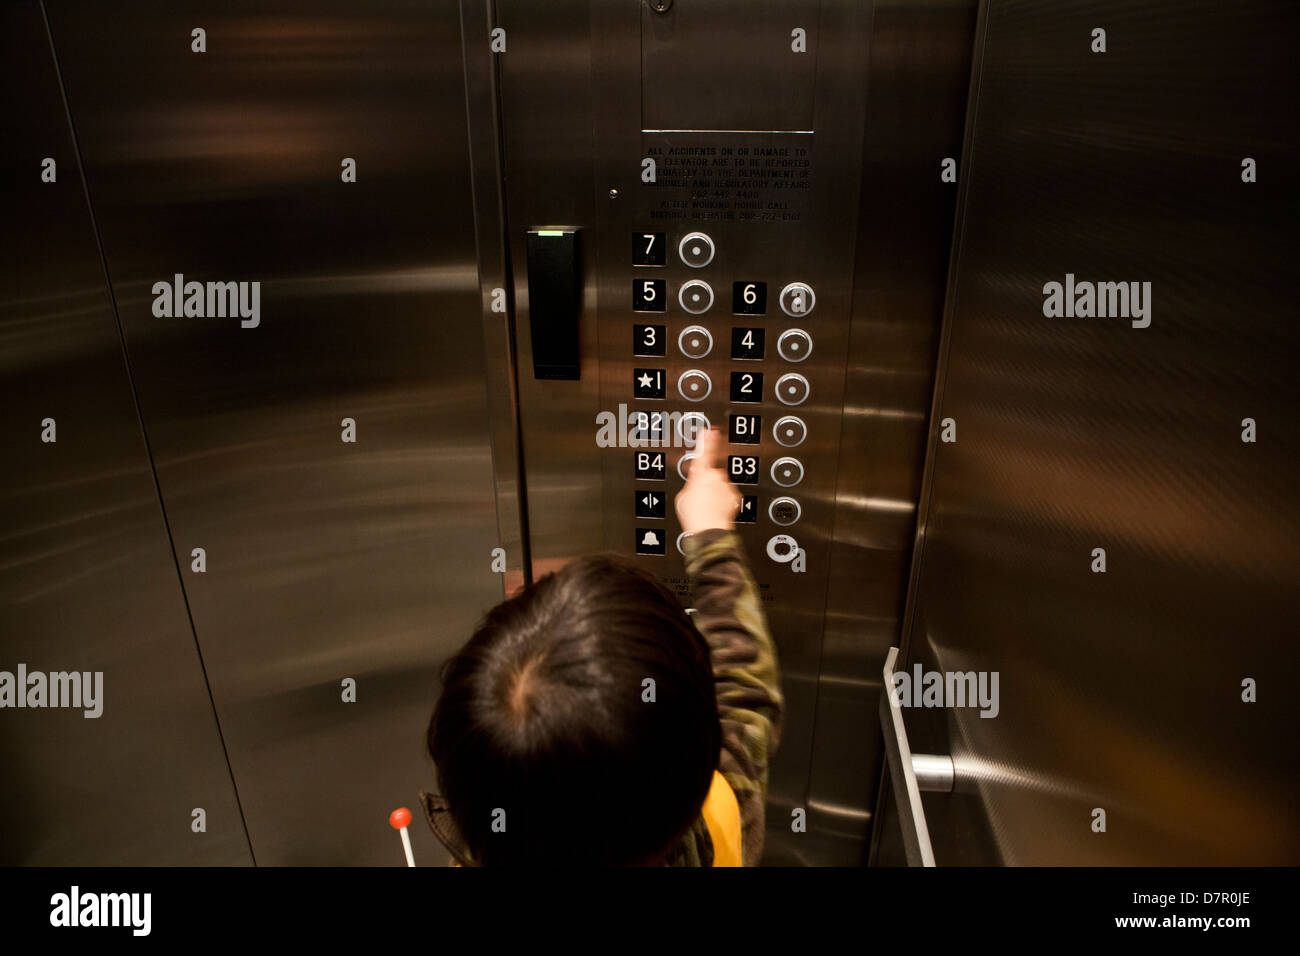 Child pushing elevator floor button - USA - Stock Image